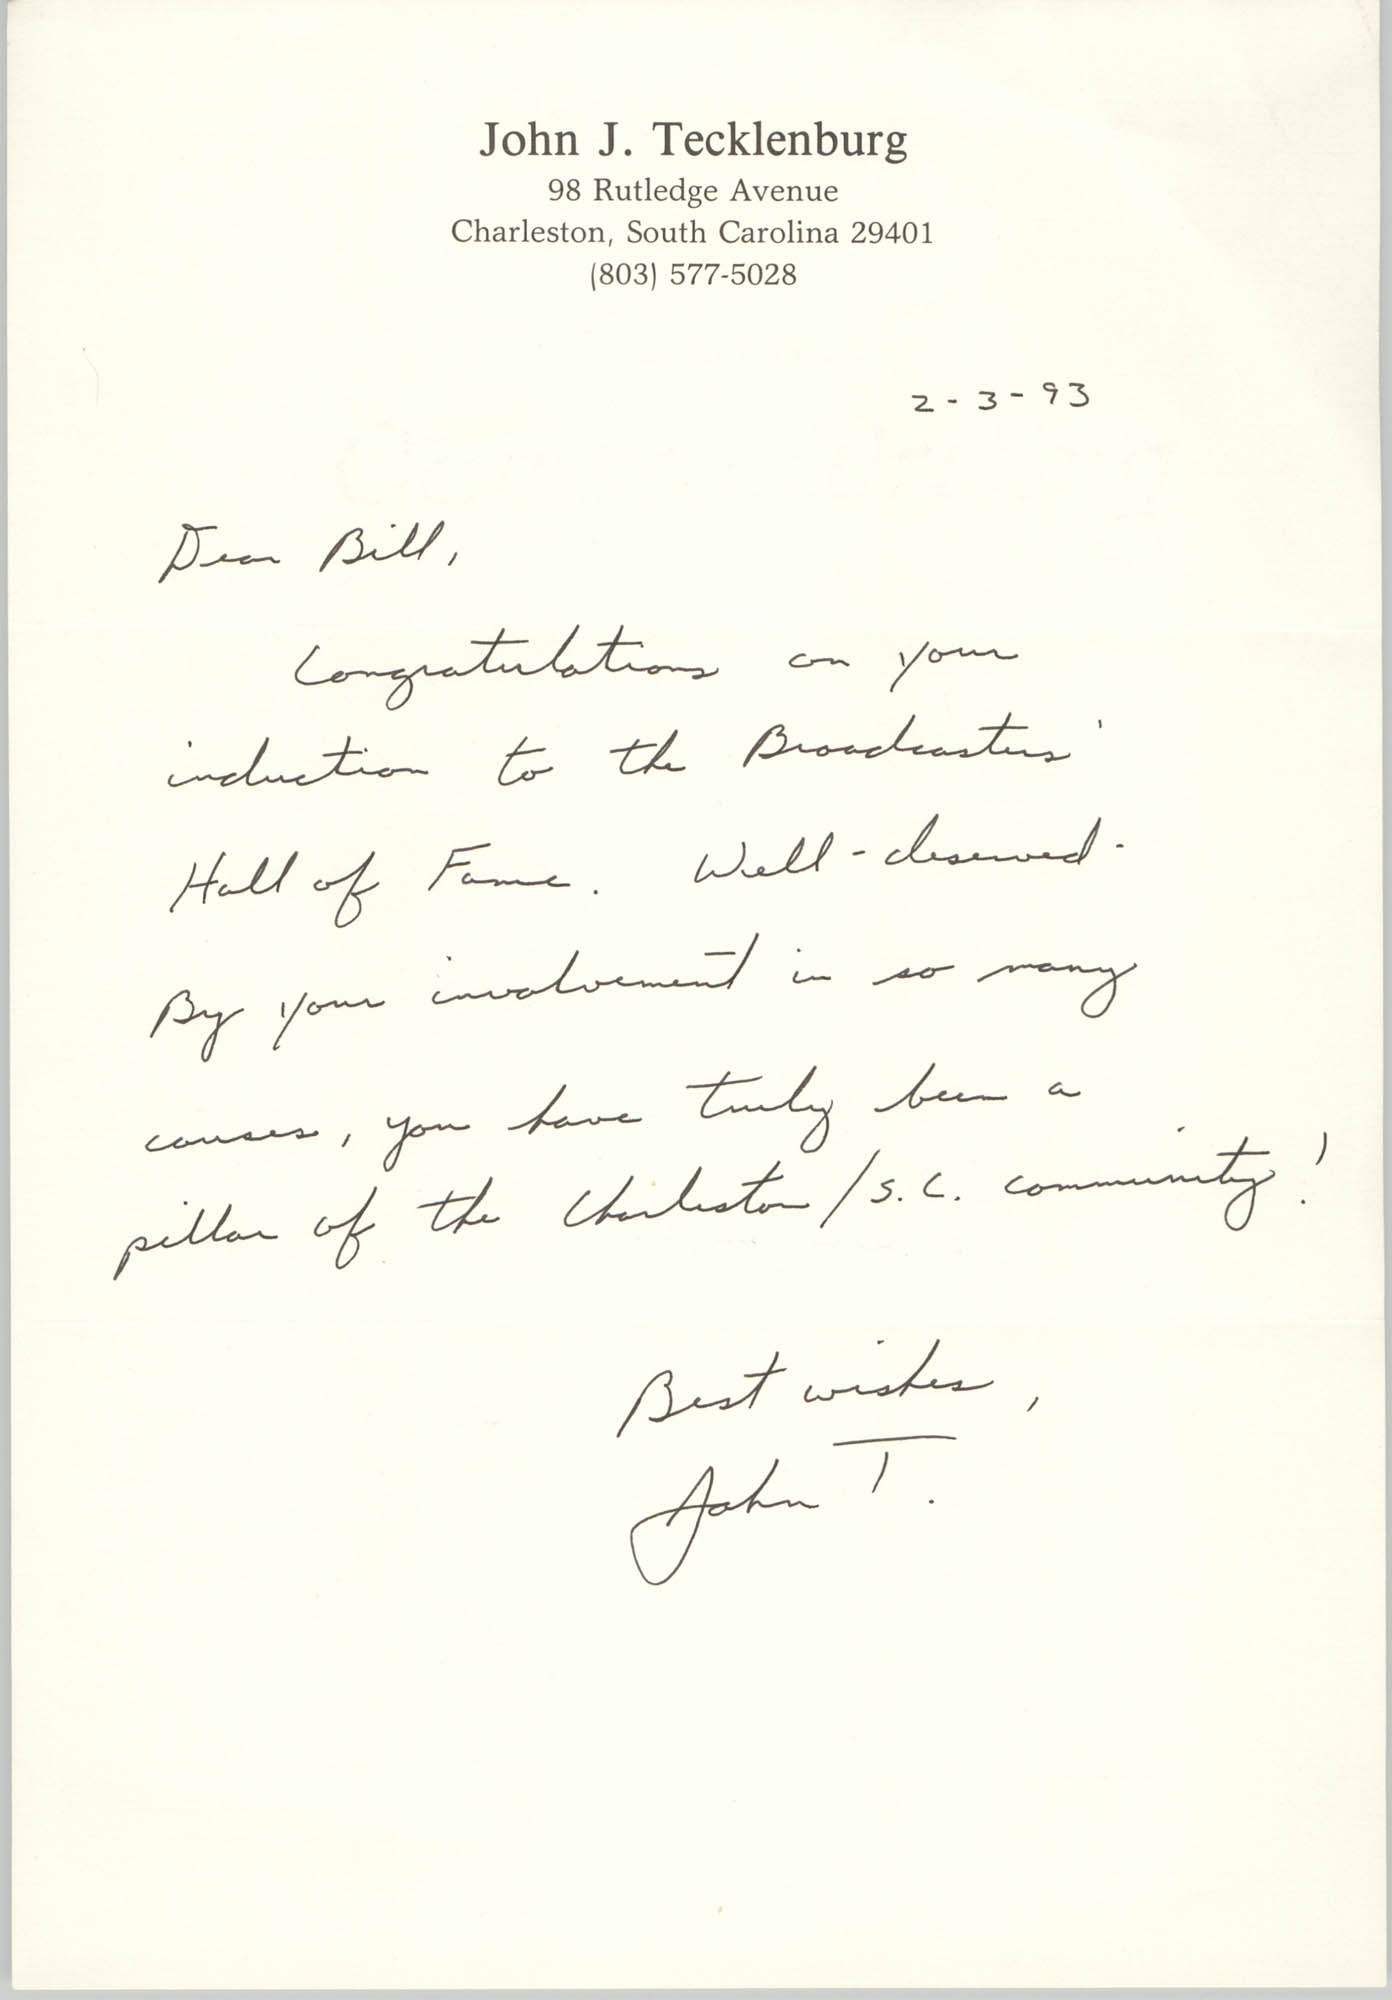 Letter from John J. Tecklenburg to William Saunders, February 3, 1993